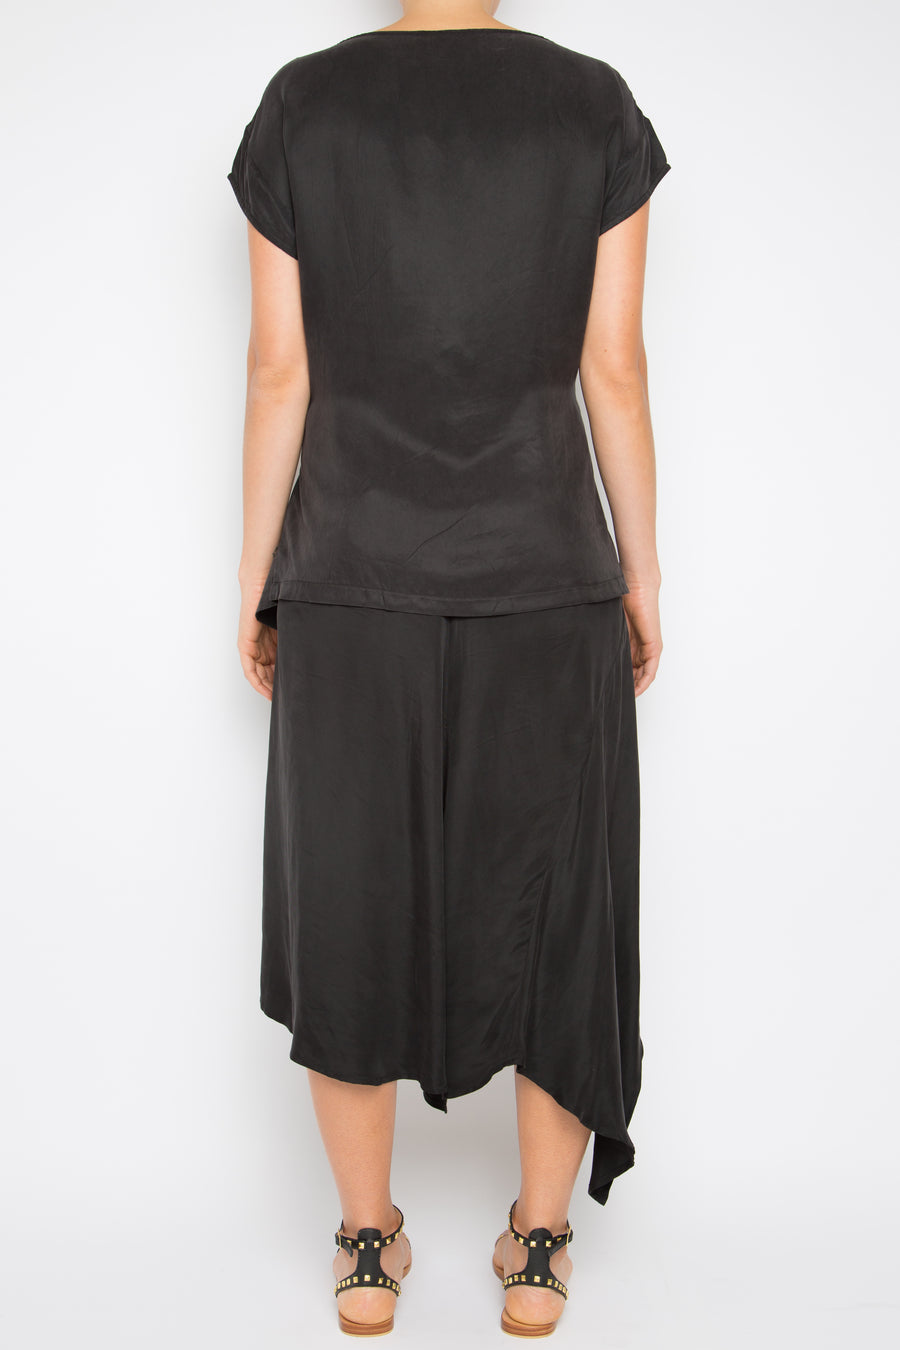 Herlusi Top in Black